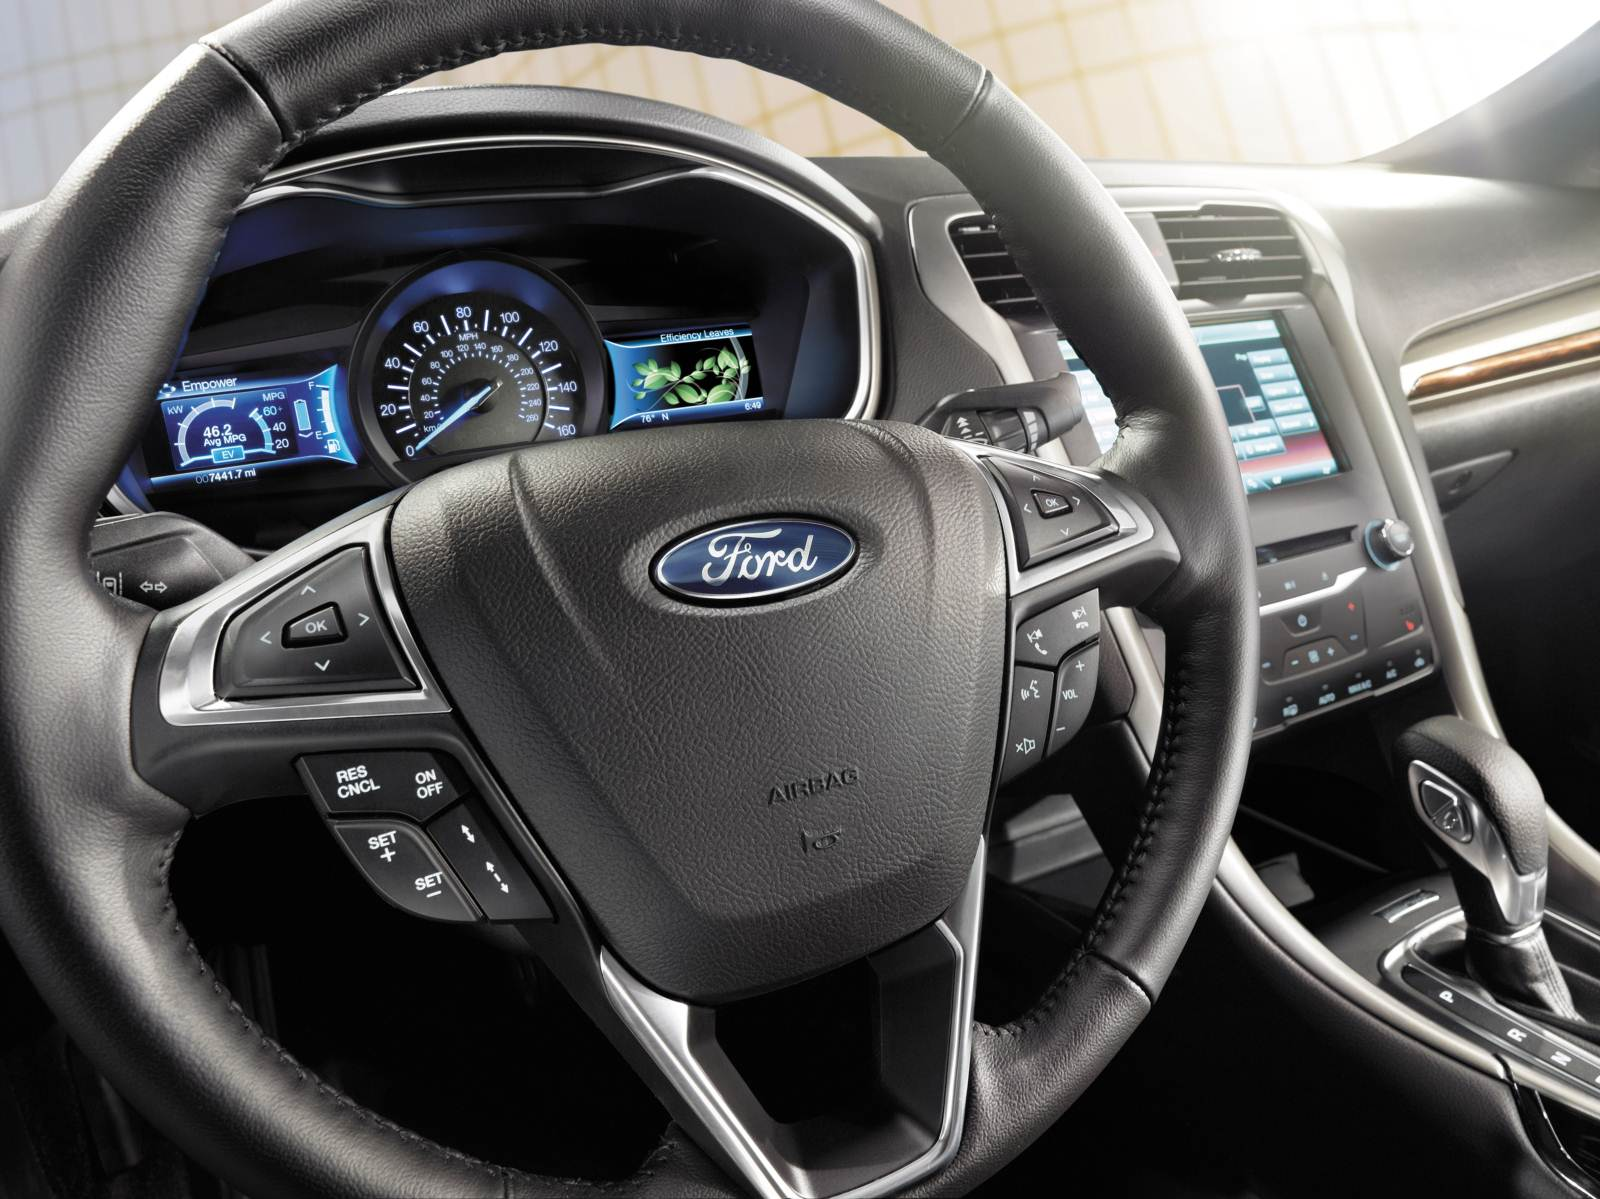 Novo ford fusion 2015 painel